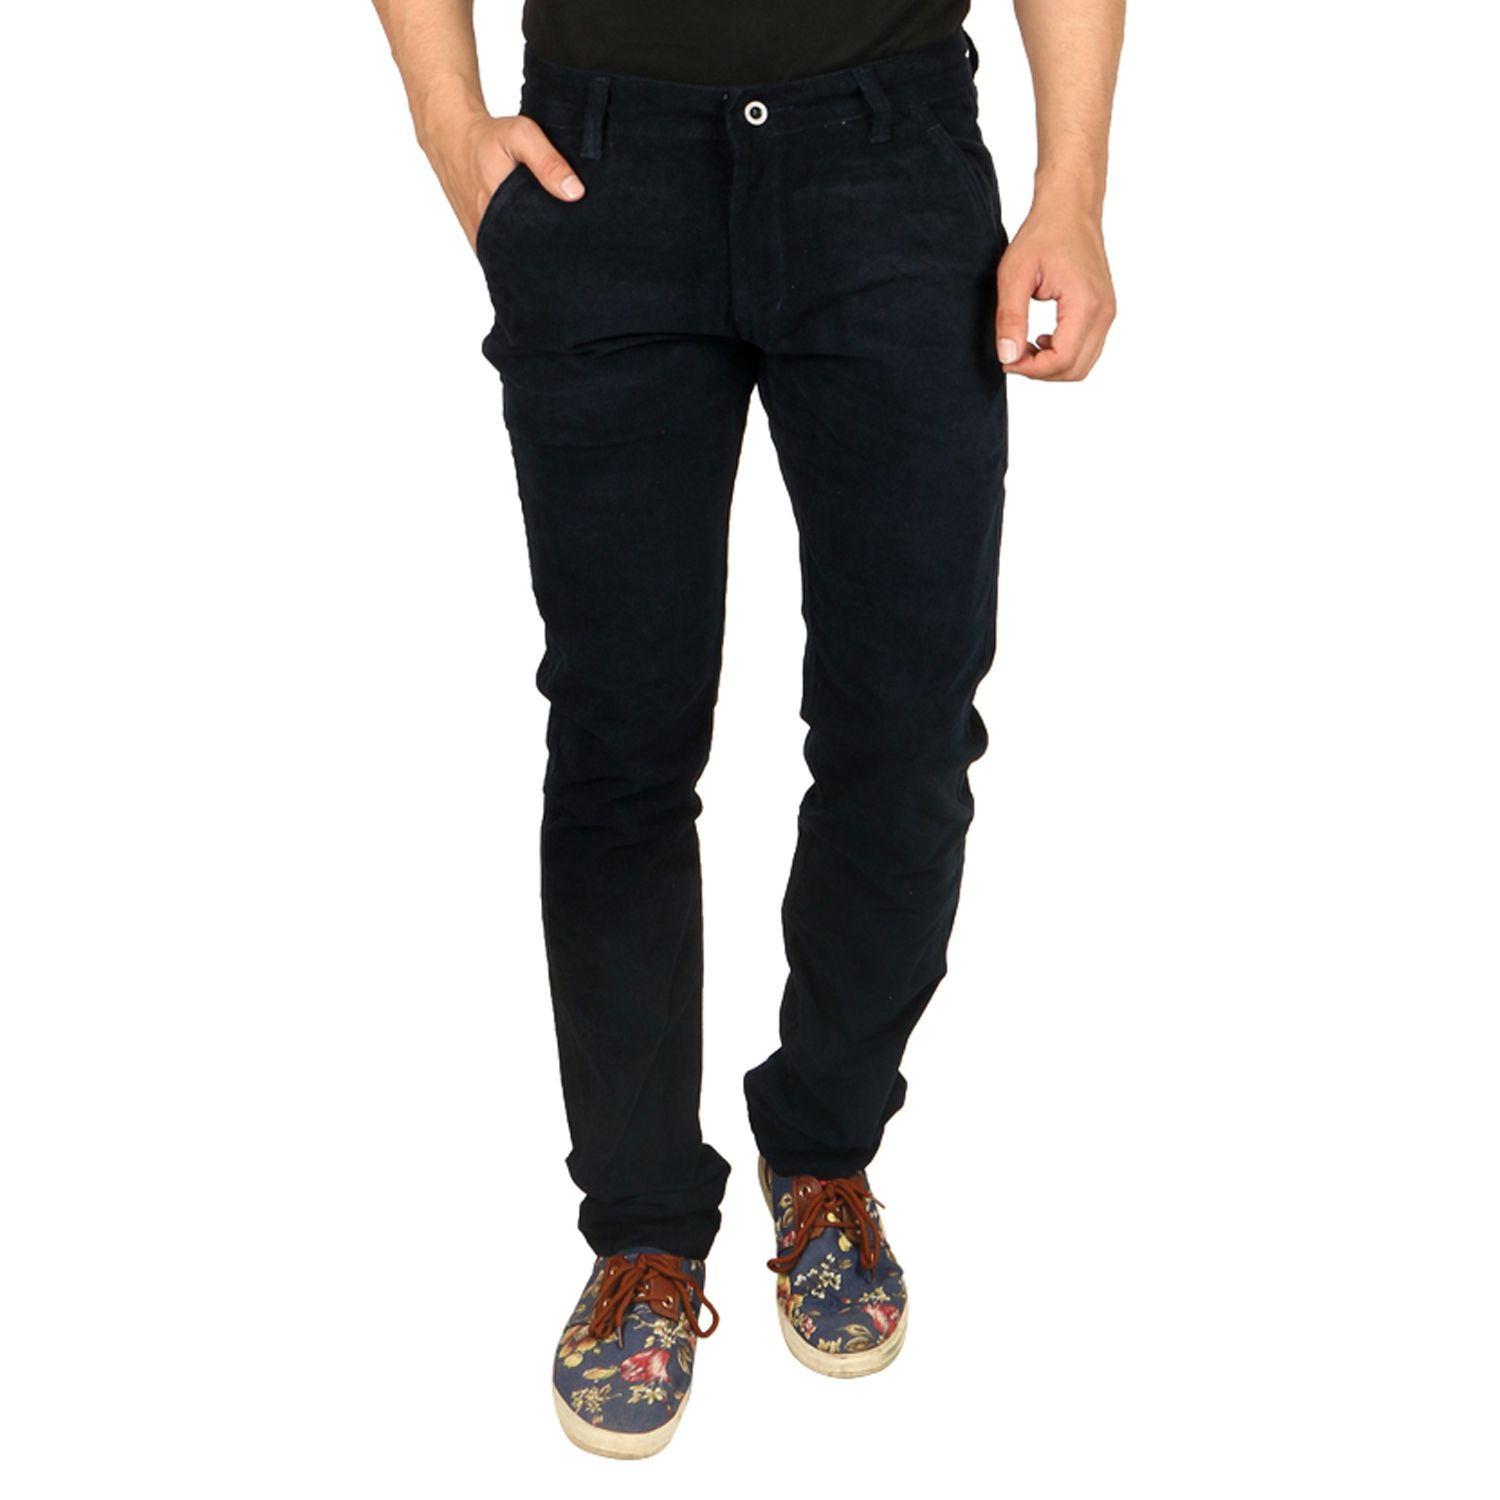 Nimegh Blue Slim Fit Chinos